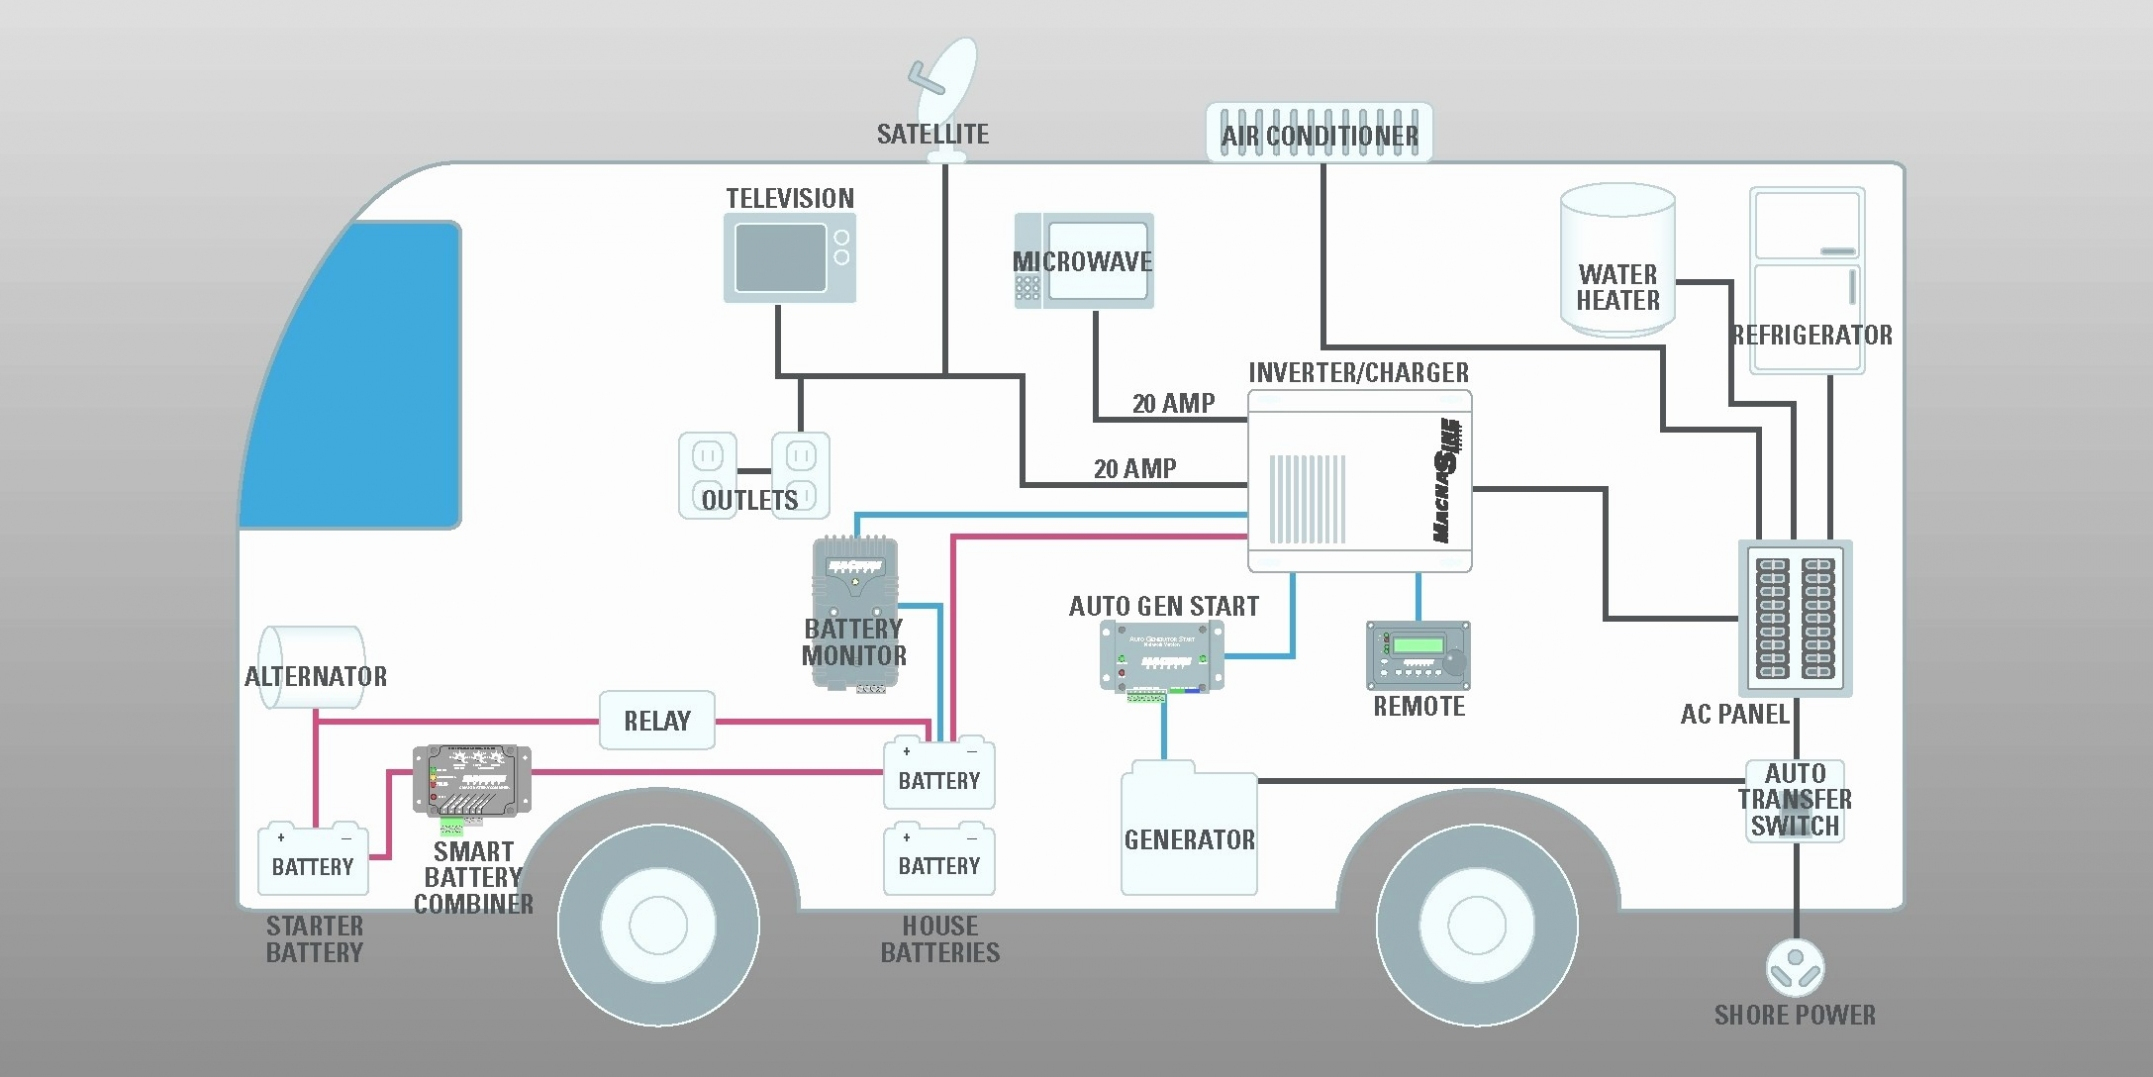 Monaco Rv Wiring Schematic | Wiring Diagram - Monaco Rv Wiring Diagram